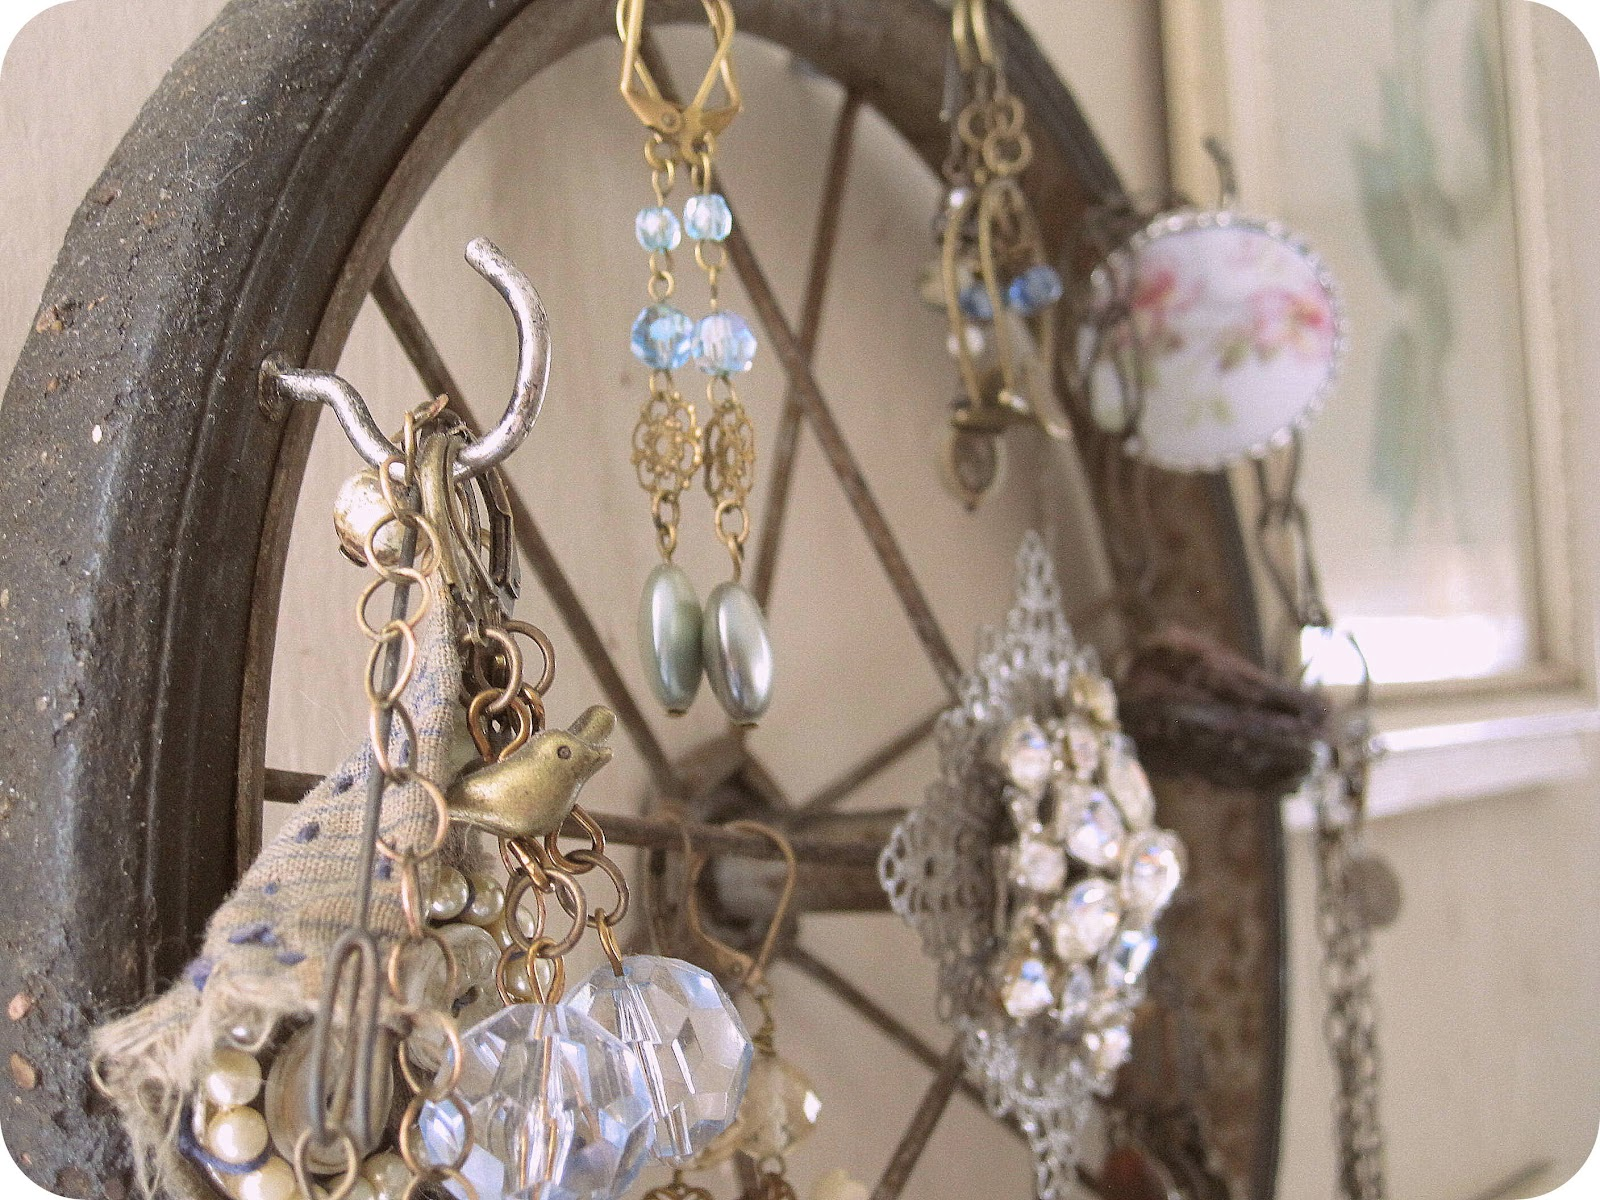 Shabby Chic Jewelry Storage and Display Idea & Sacred Cake by Jennifer Valentine: Shabby Chic Jewelry Storage and ...